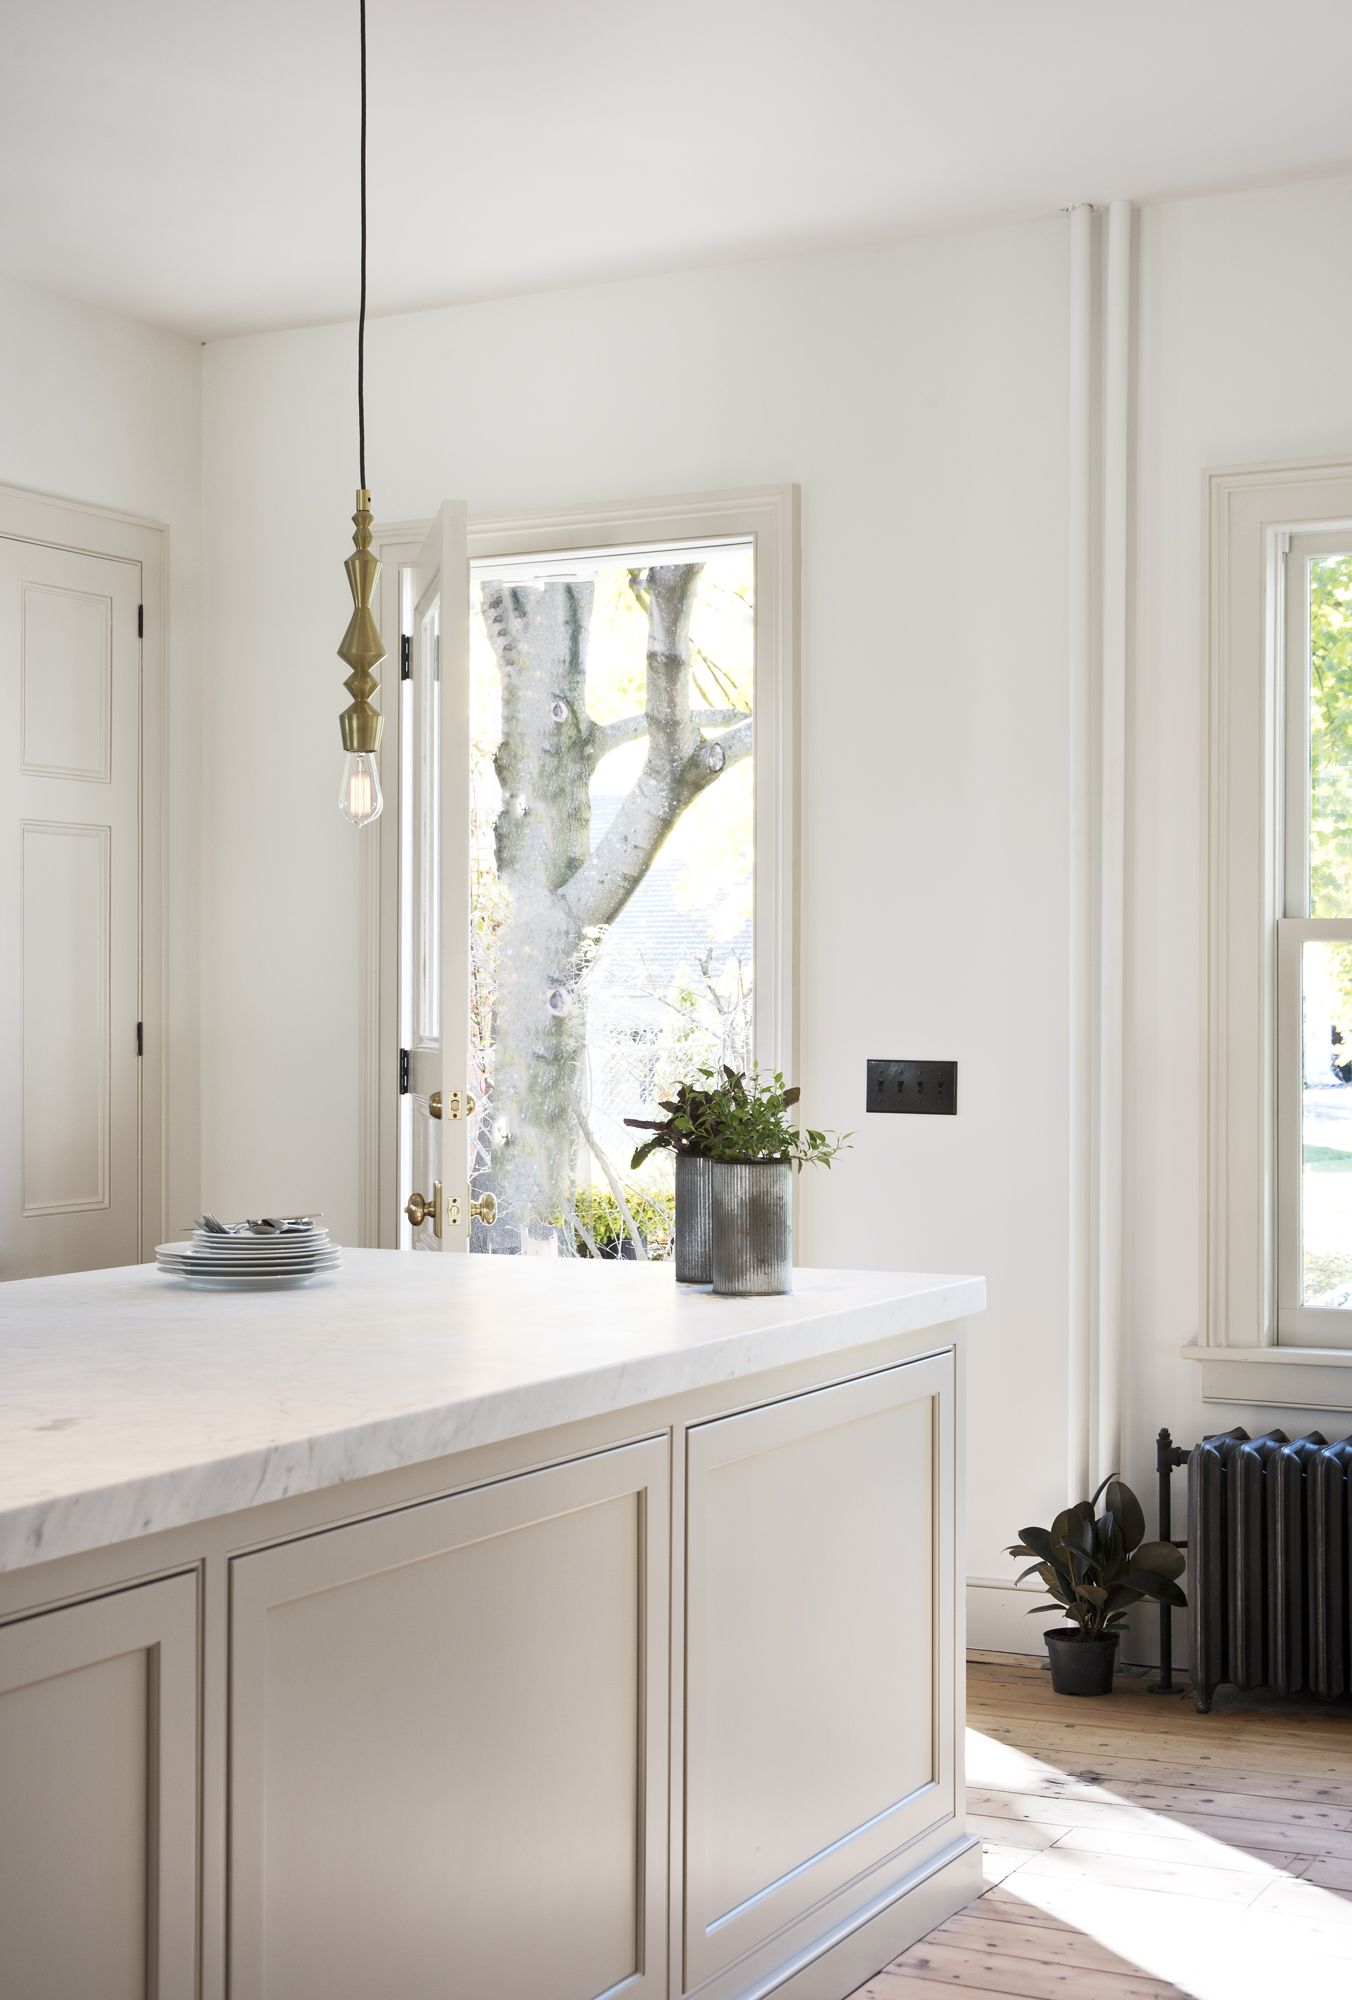 honed Carrara counters and off-white cabinetry create a soft, bright look for a modern kitchen in a historic renovation, bronze colored switches add to the historic feel